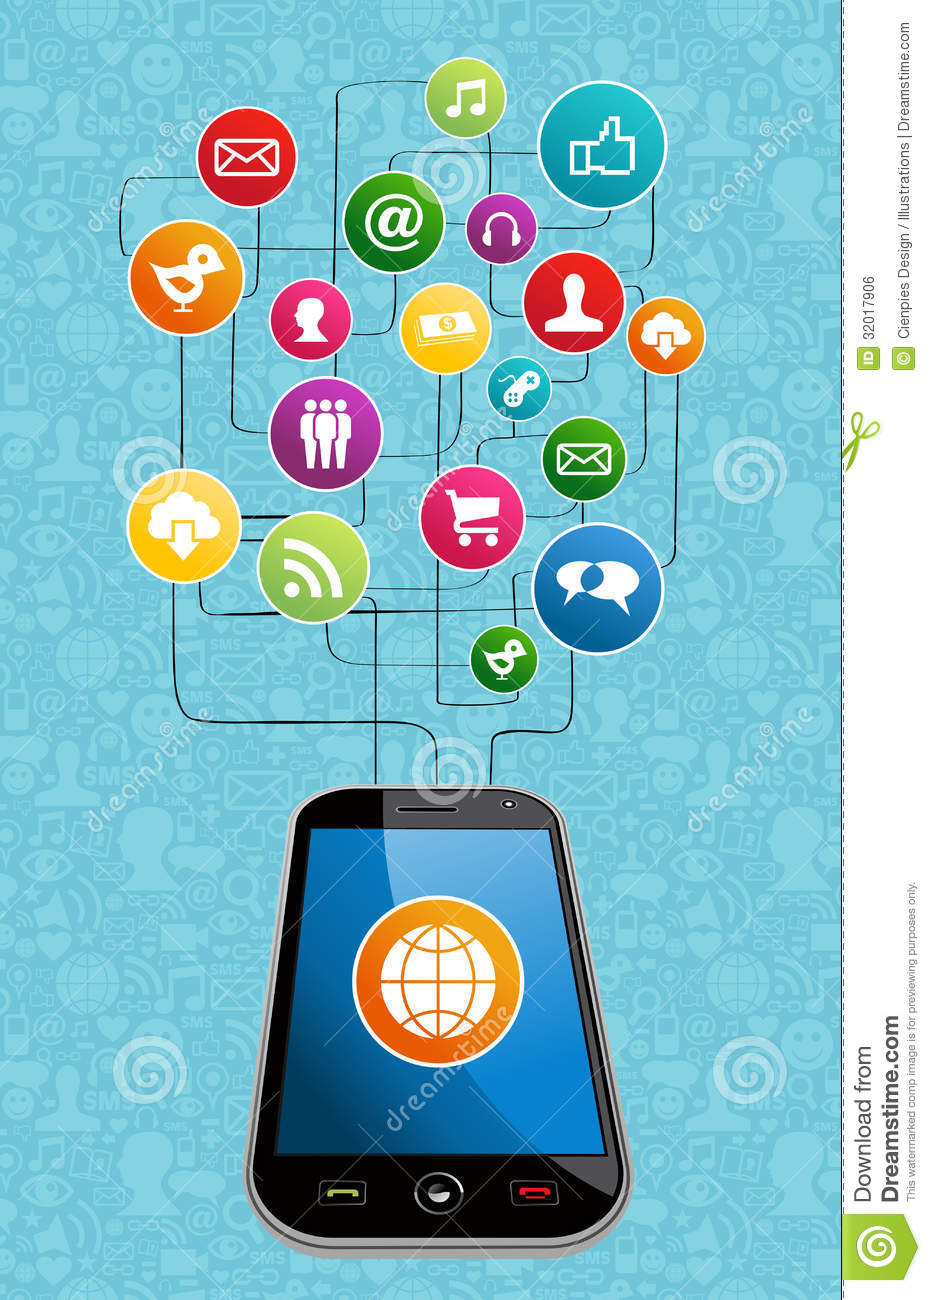 cell diagram clipart global social media mobility royalty free stock image #12